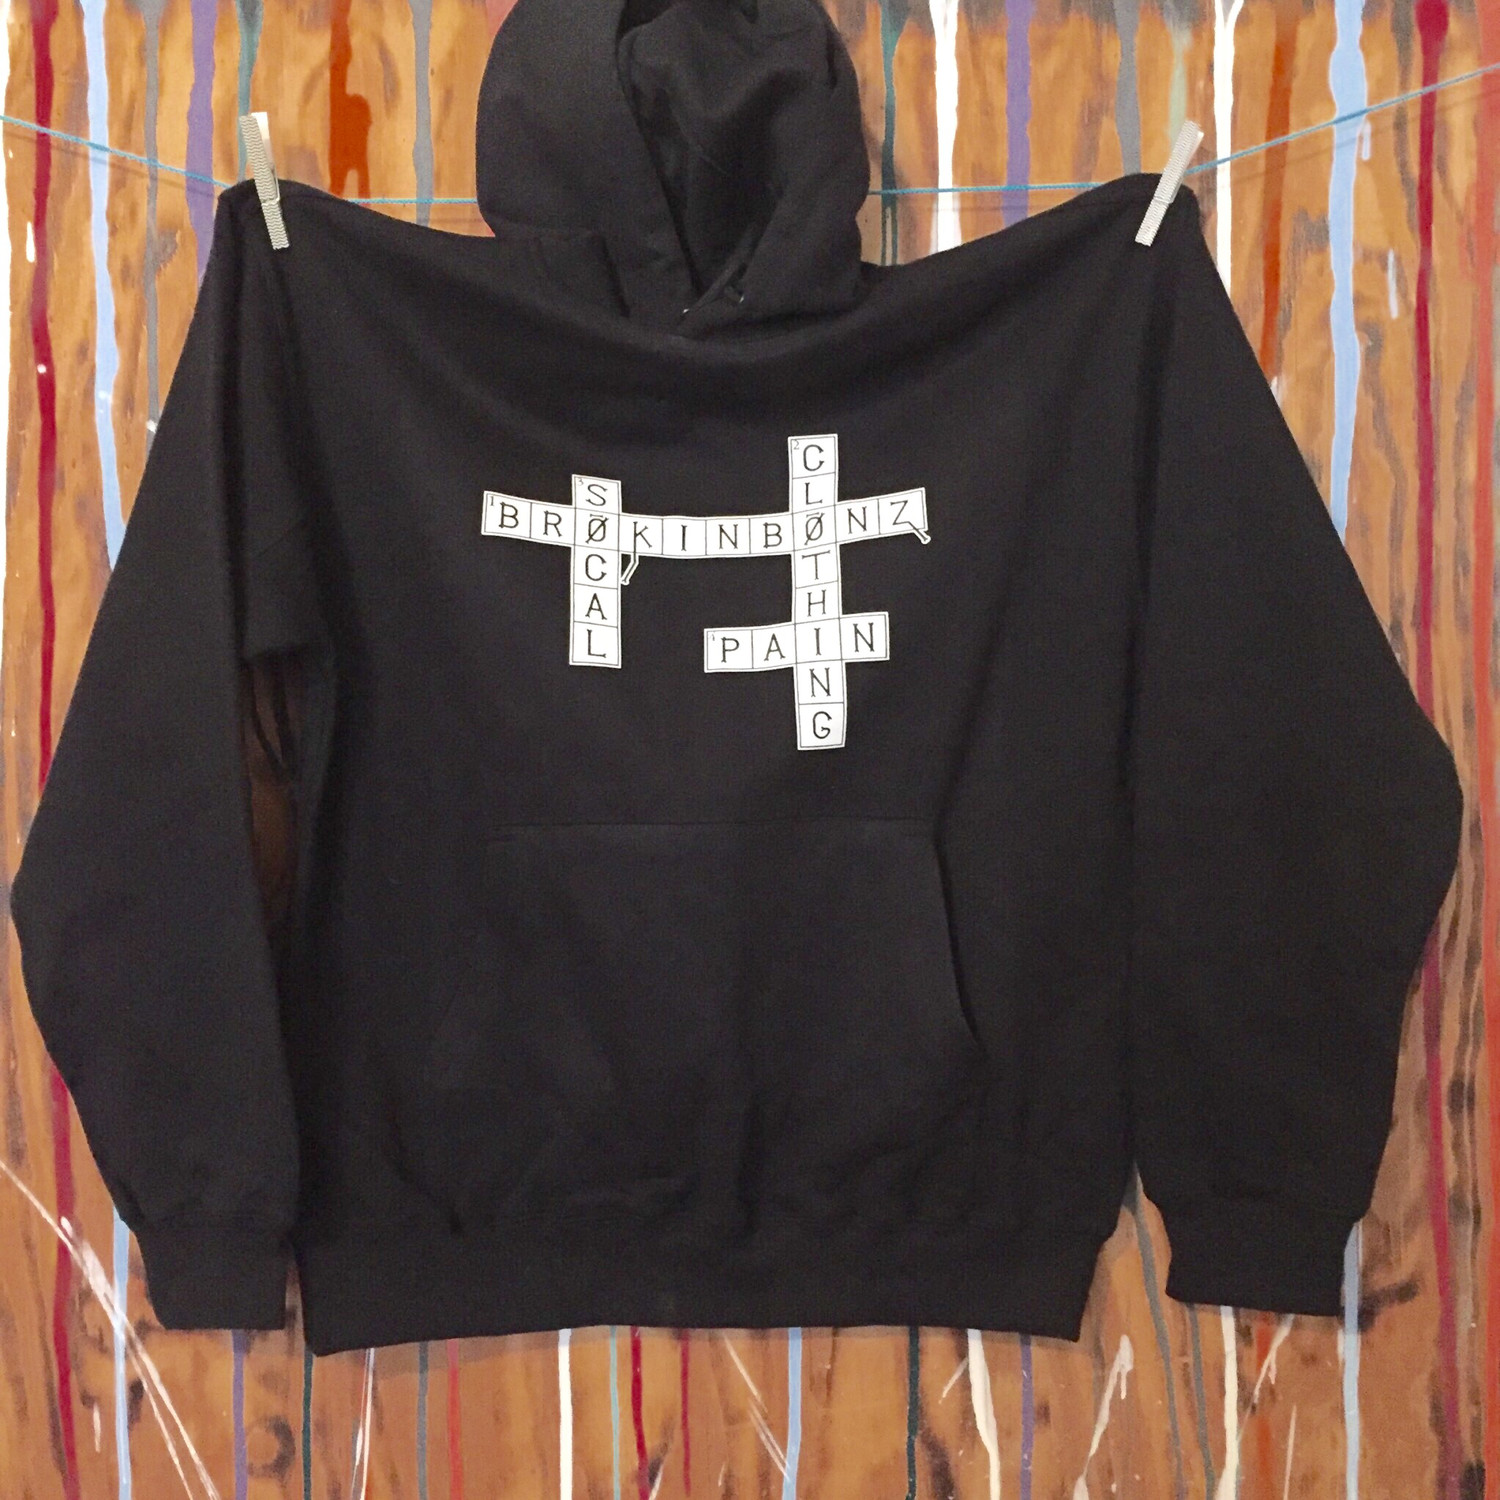 CROSSWORD PUZZLE Unisex Pull Over Hoodie with Custom Fraction